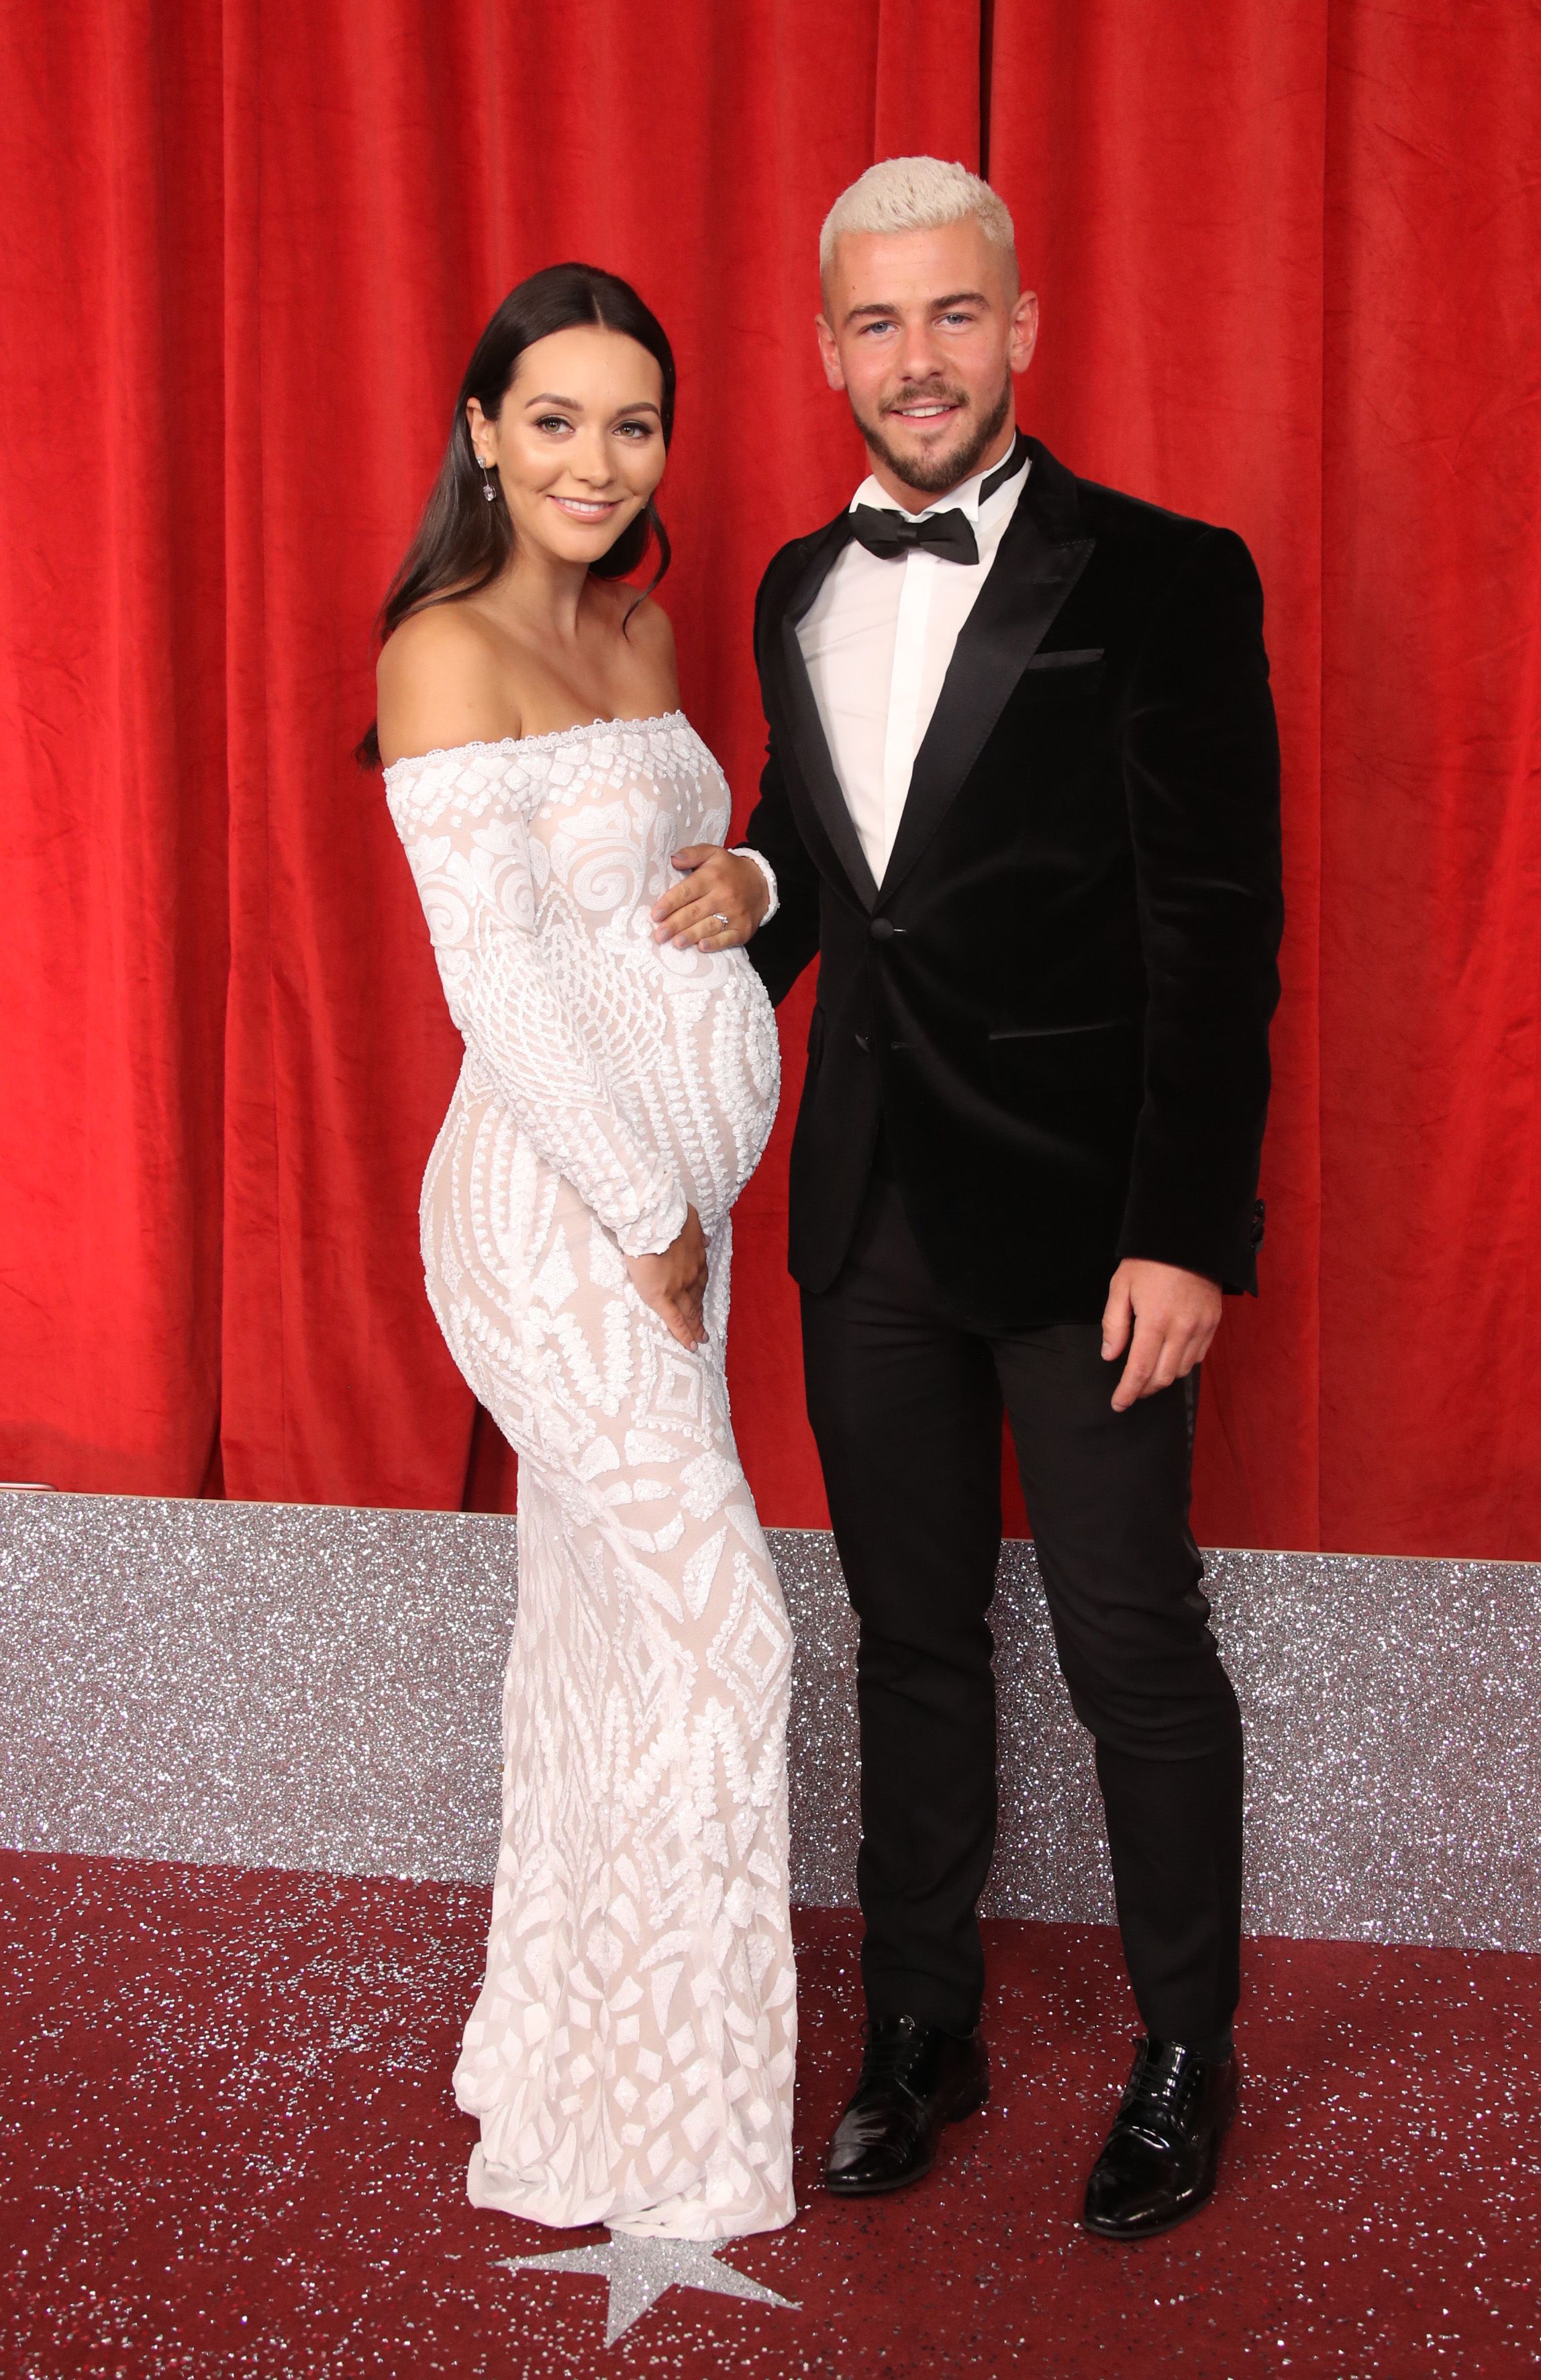 Hollyoaks' real-life couple Nadine Mulkerrin and Rory Douglas-Speed introduce newborn son to the soap's cast